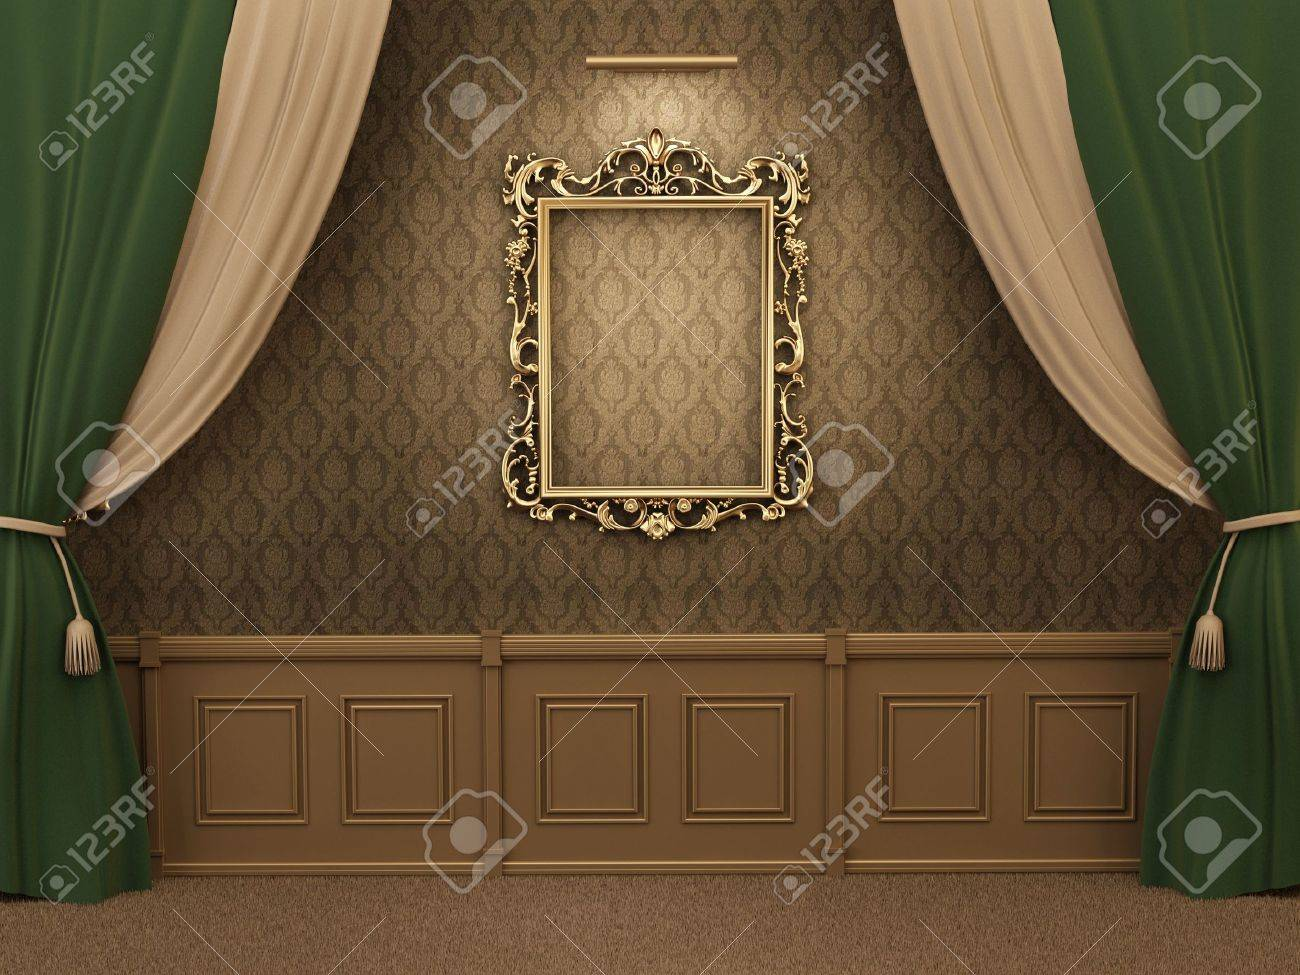 Gallery Interior with empty frame on wall with curtain. Stock Photo - 10523442